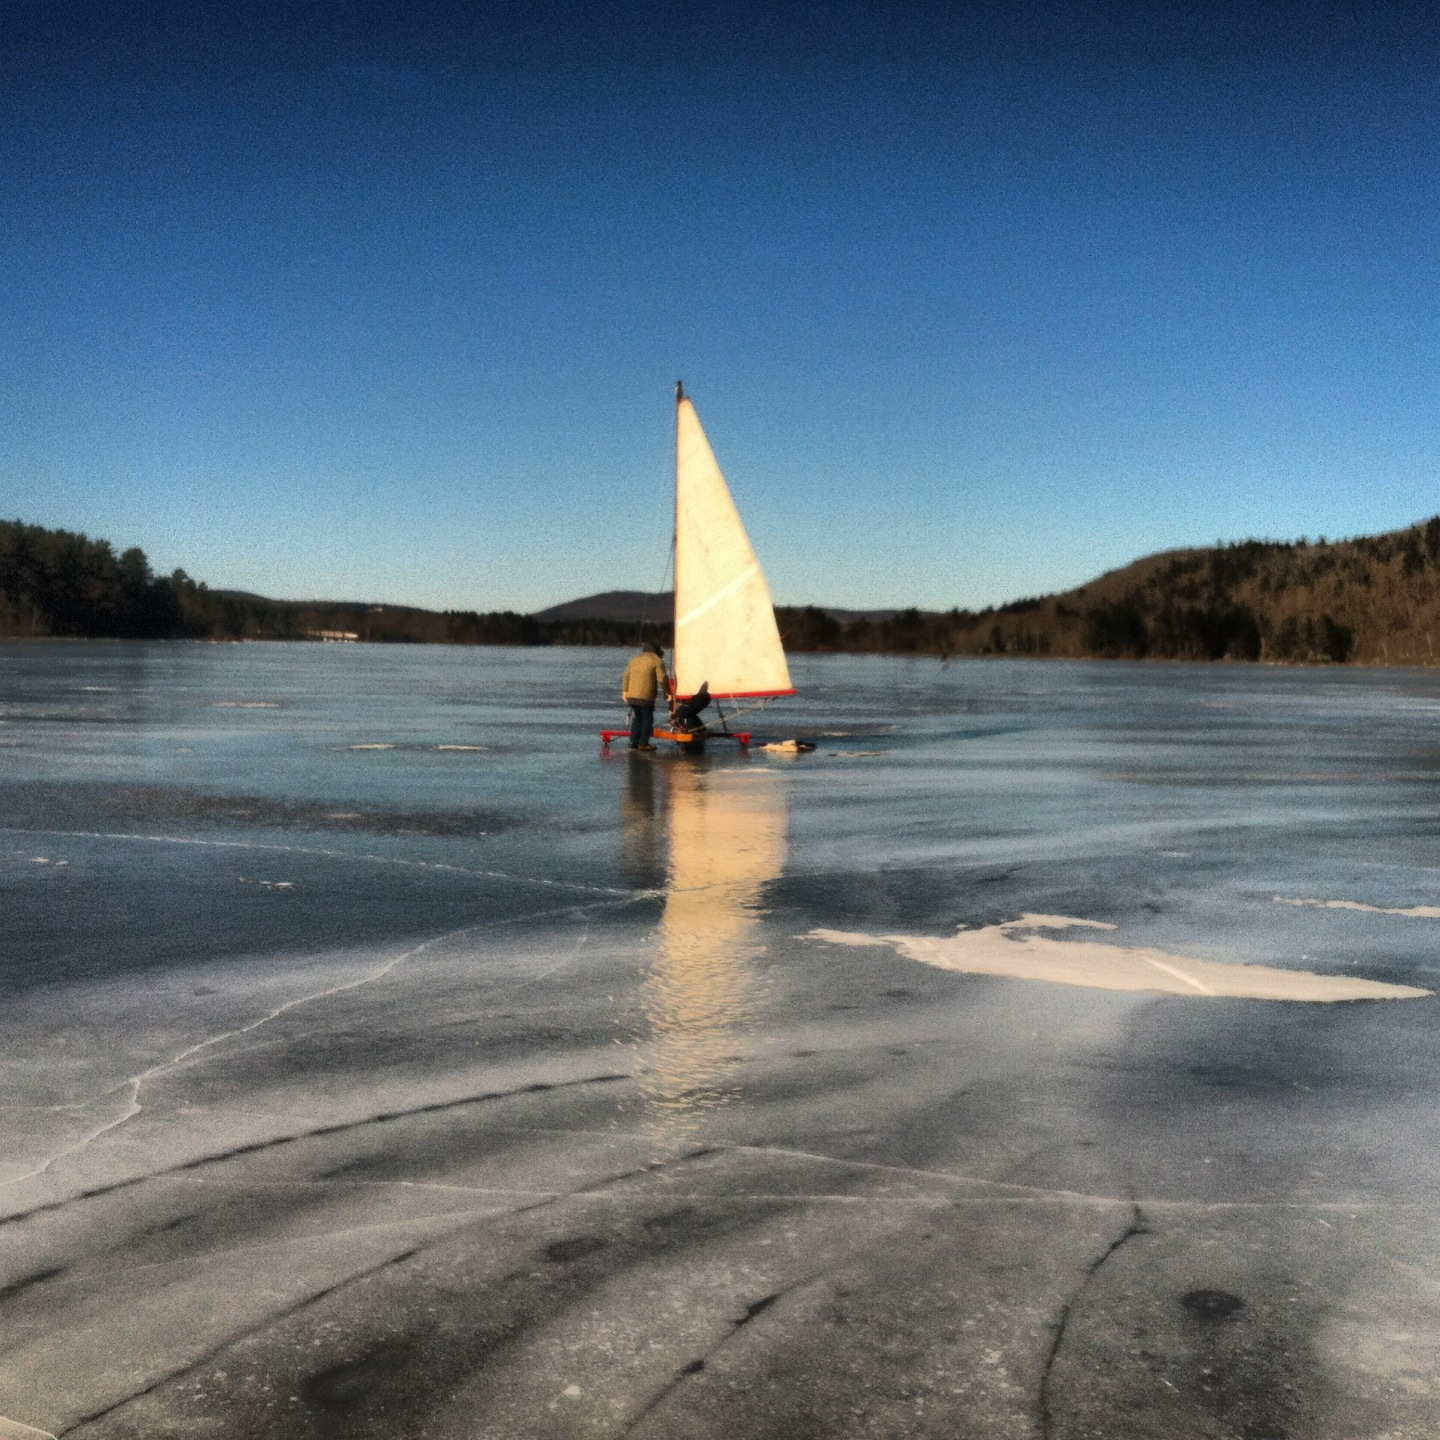 Ice boating the other day